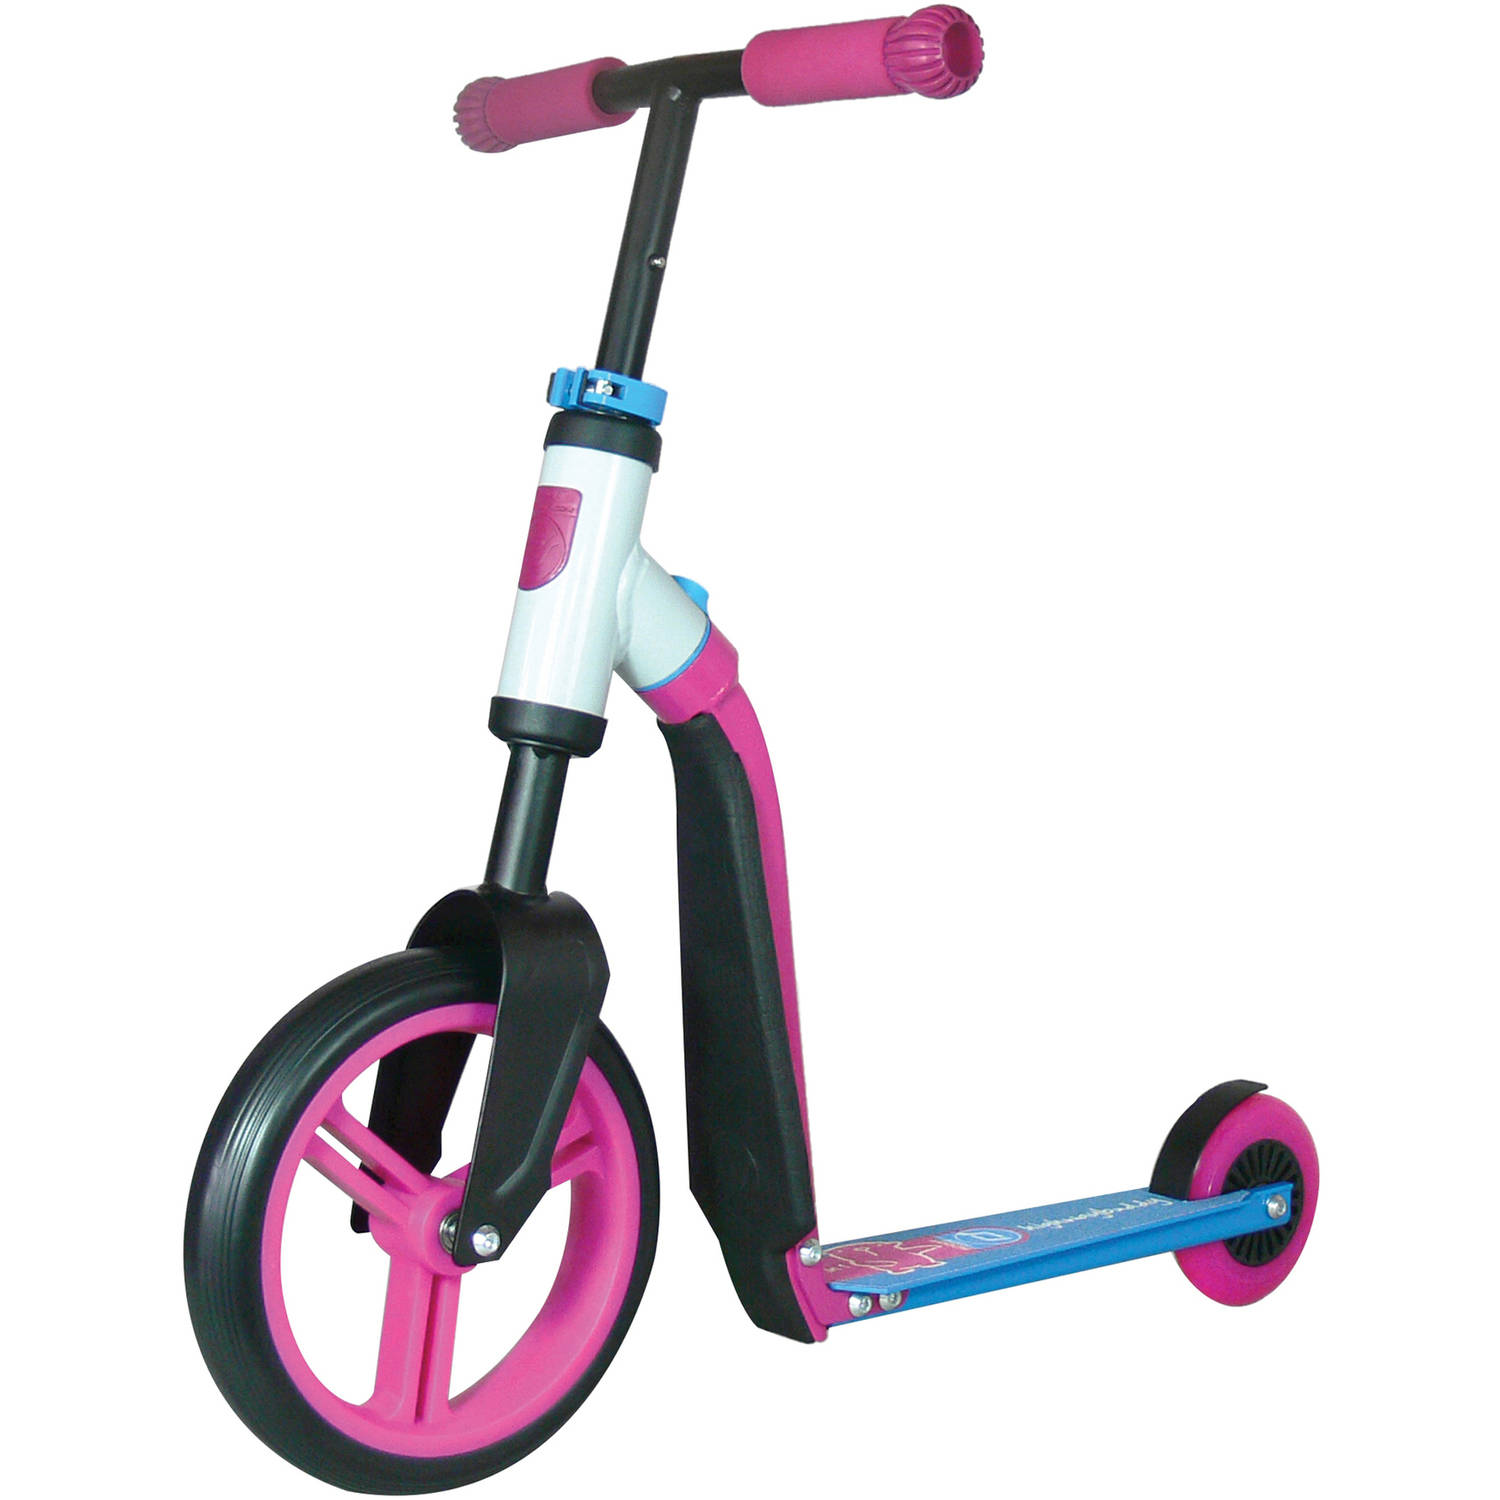 Schylling Scoot and Ride Highway Ride-On, Pink/Blue